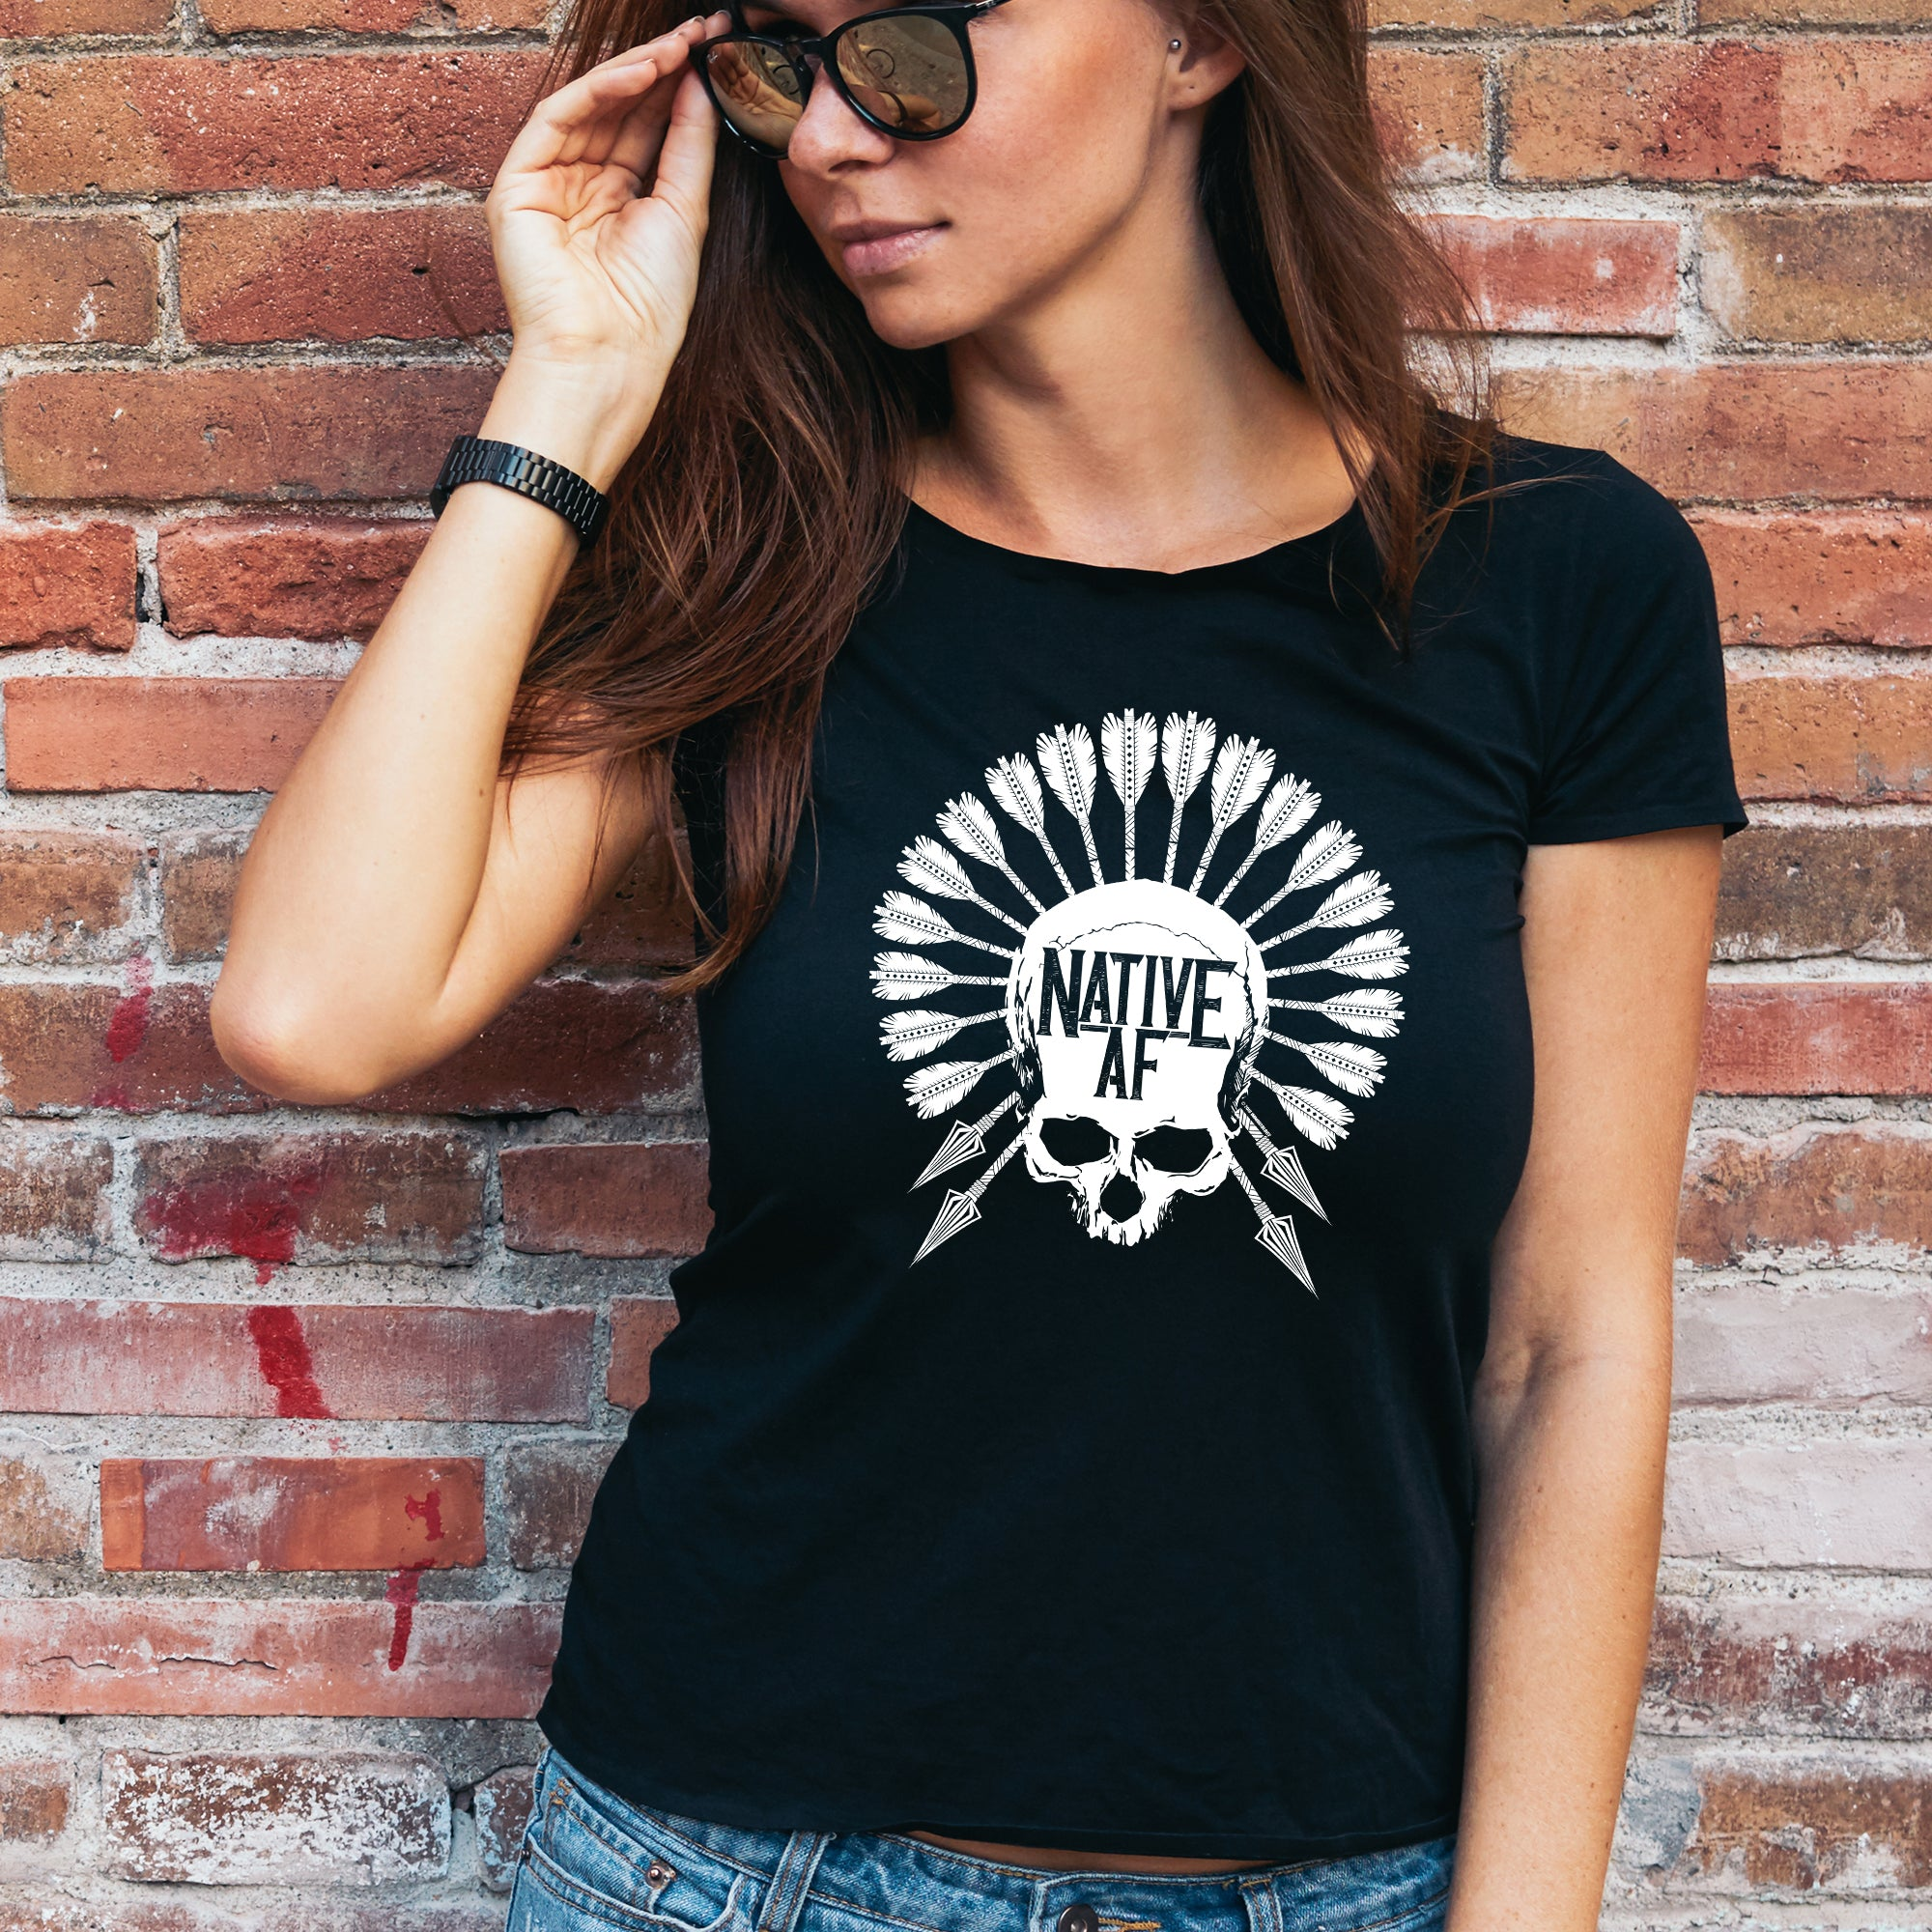 Native AF t-shirt, birthday, Christmas, Father's Day, Mother's Day, gift